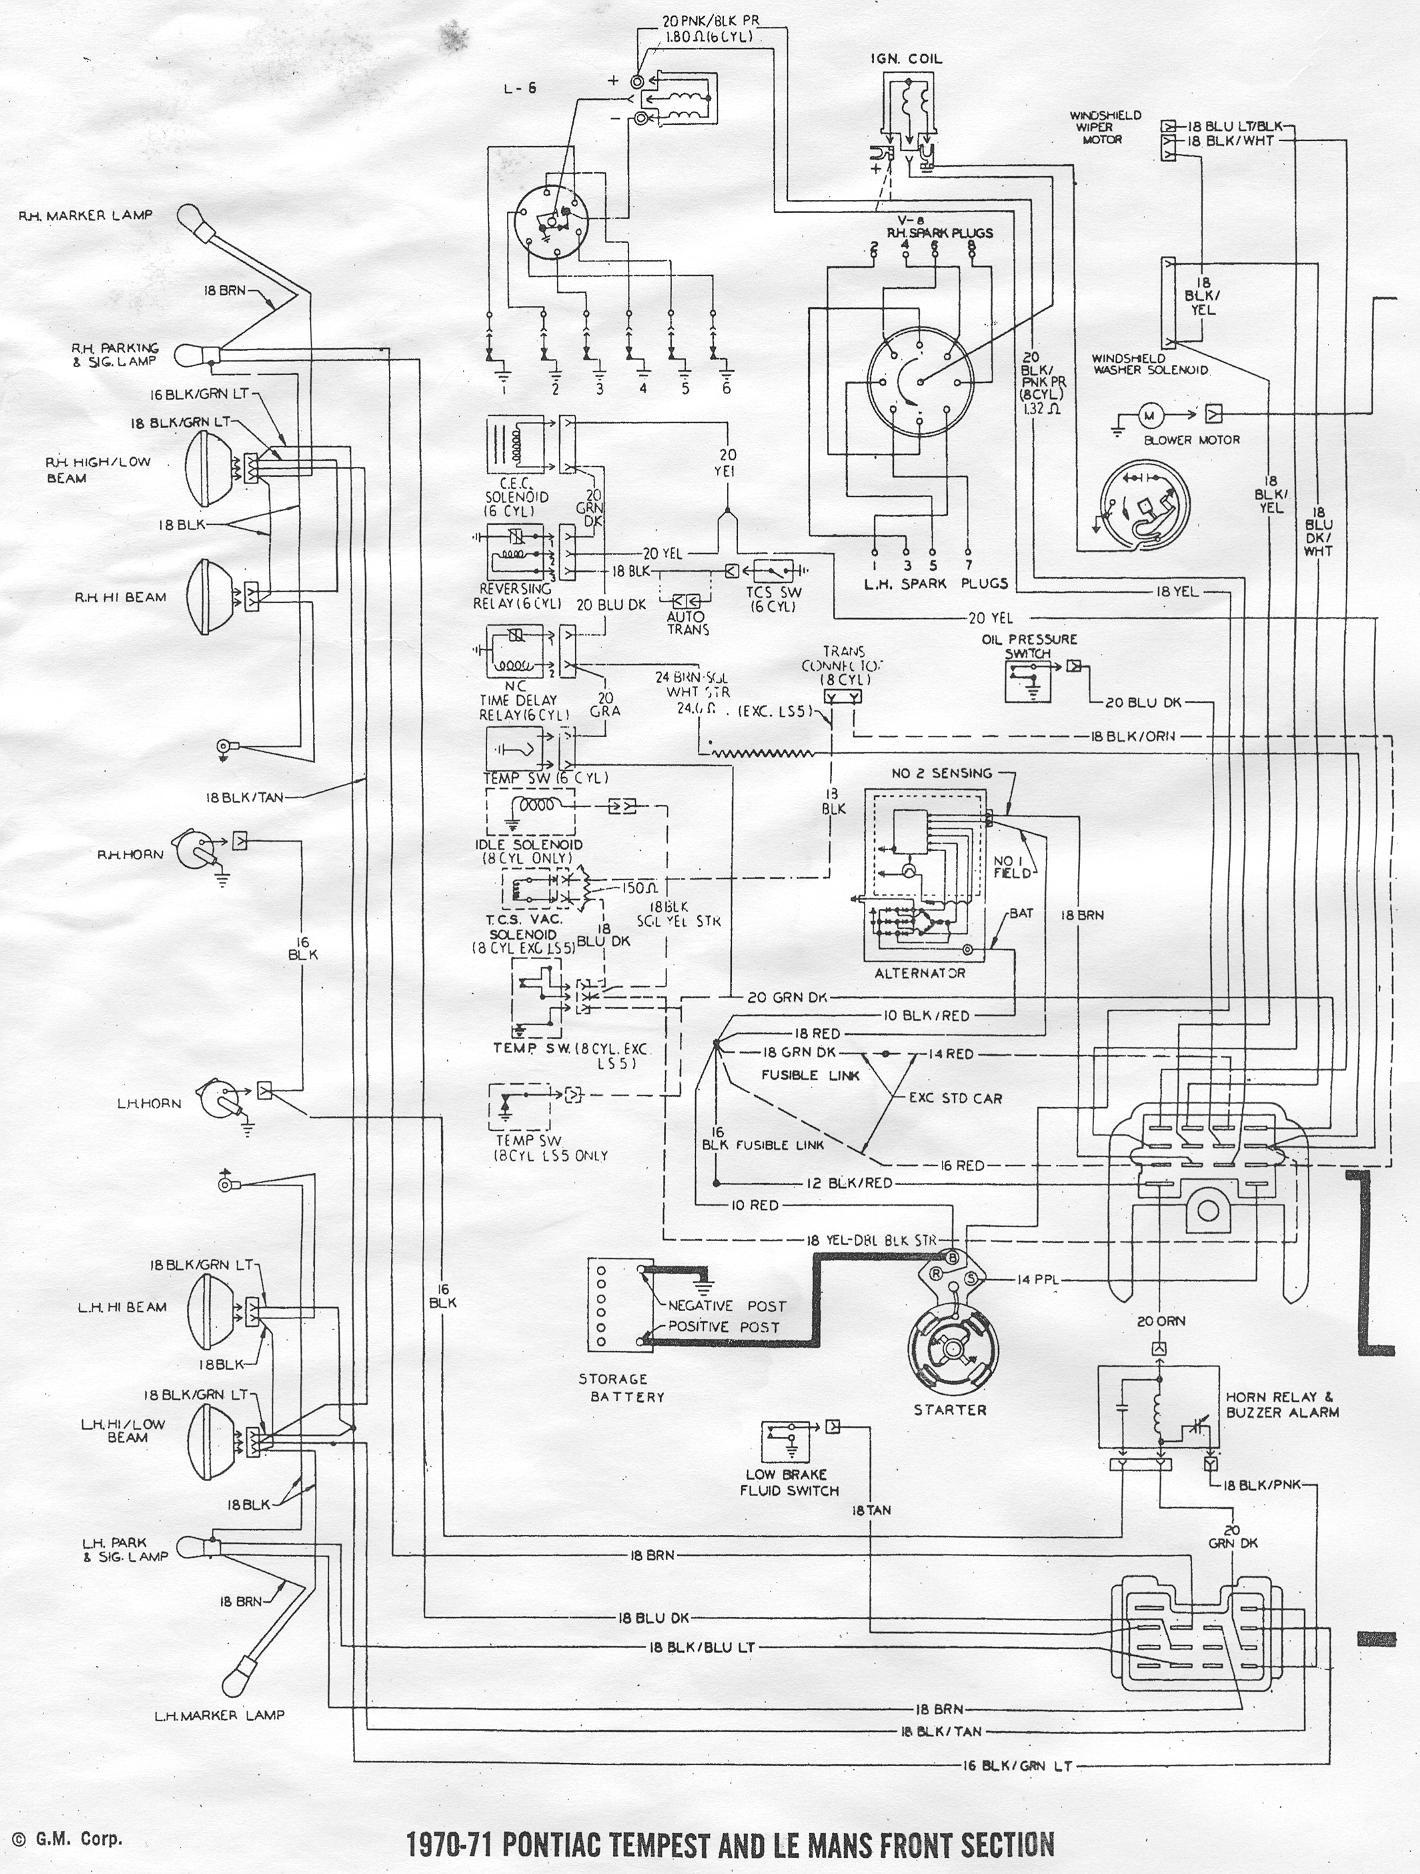 chevelle ss dash wiring diagram wiring diagram 72 chevelle wiring schematics jodebal